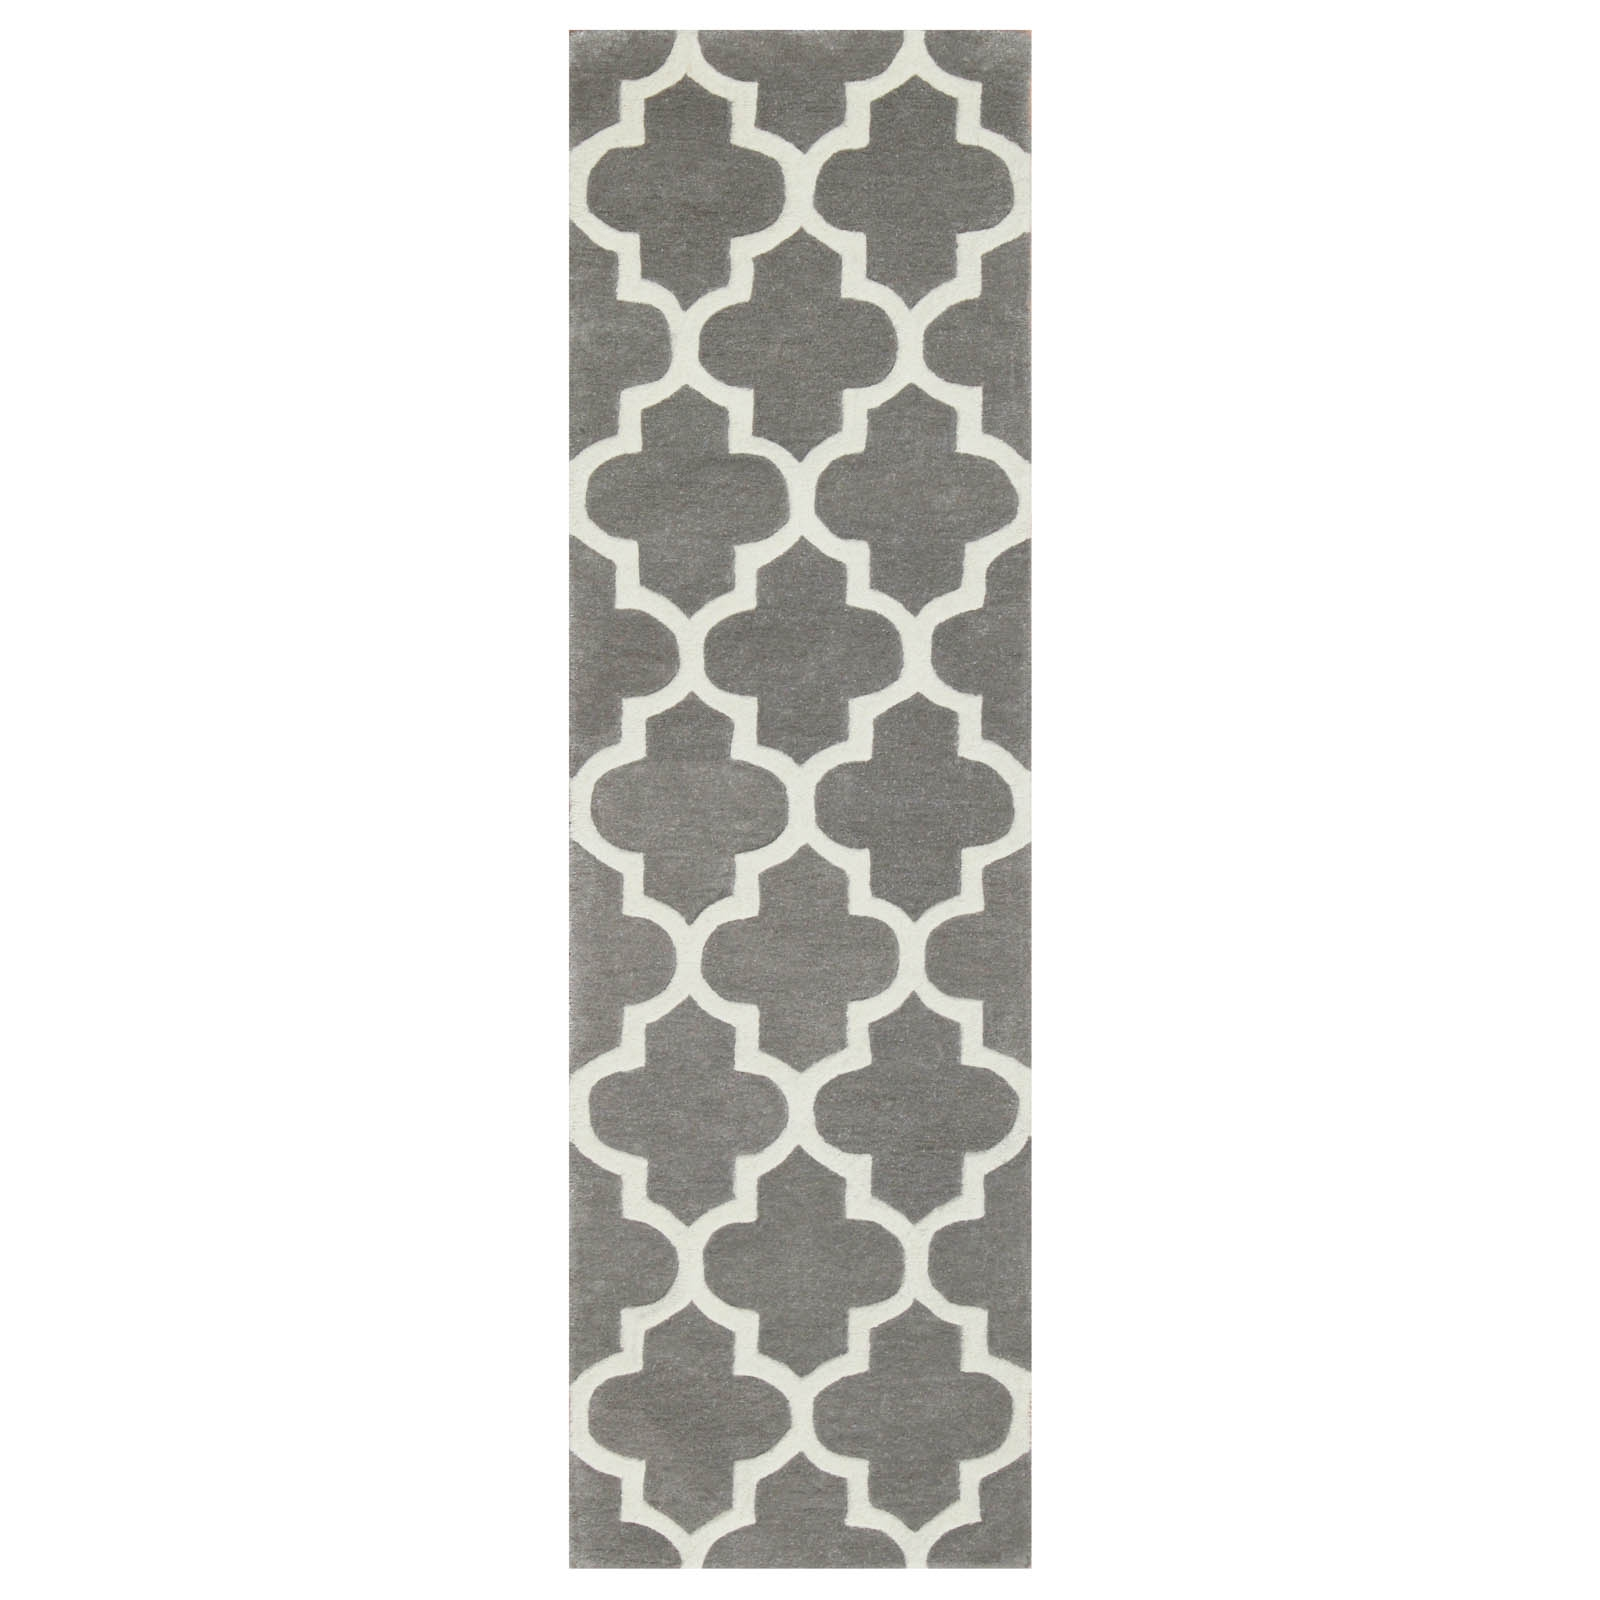 Arabesque Hallway Runners With Free Uk Delivery From The Rug With Hallway Runners Black And Grey (#1 of 20)